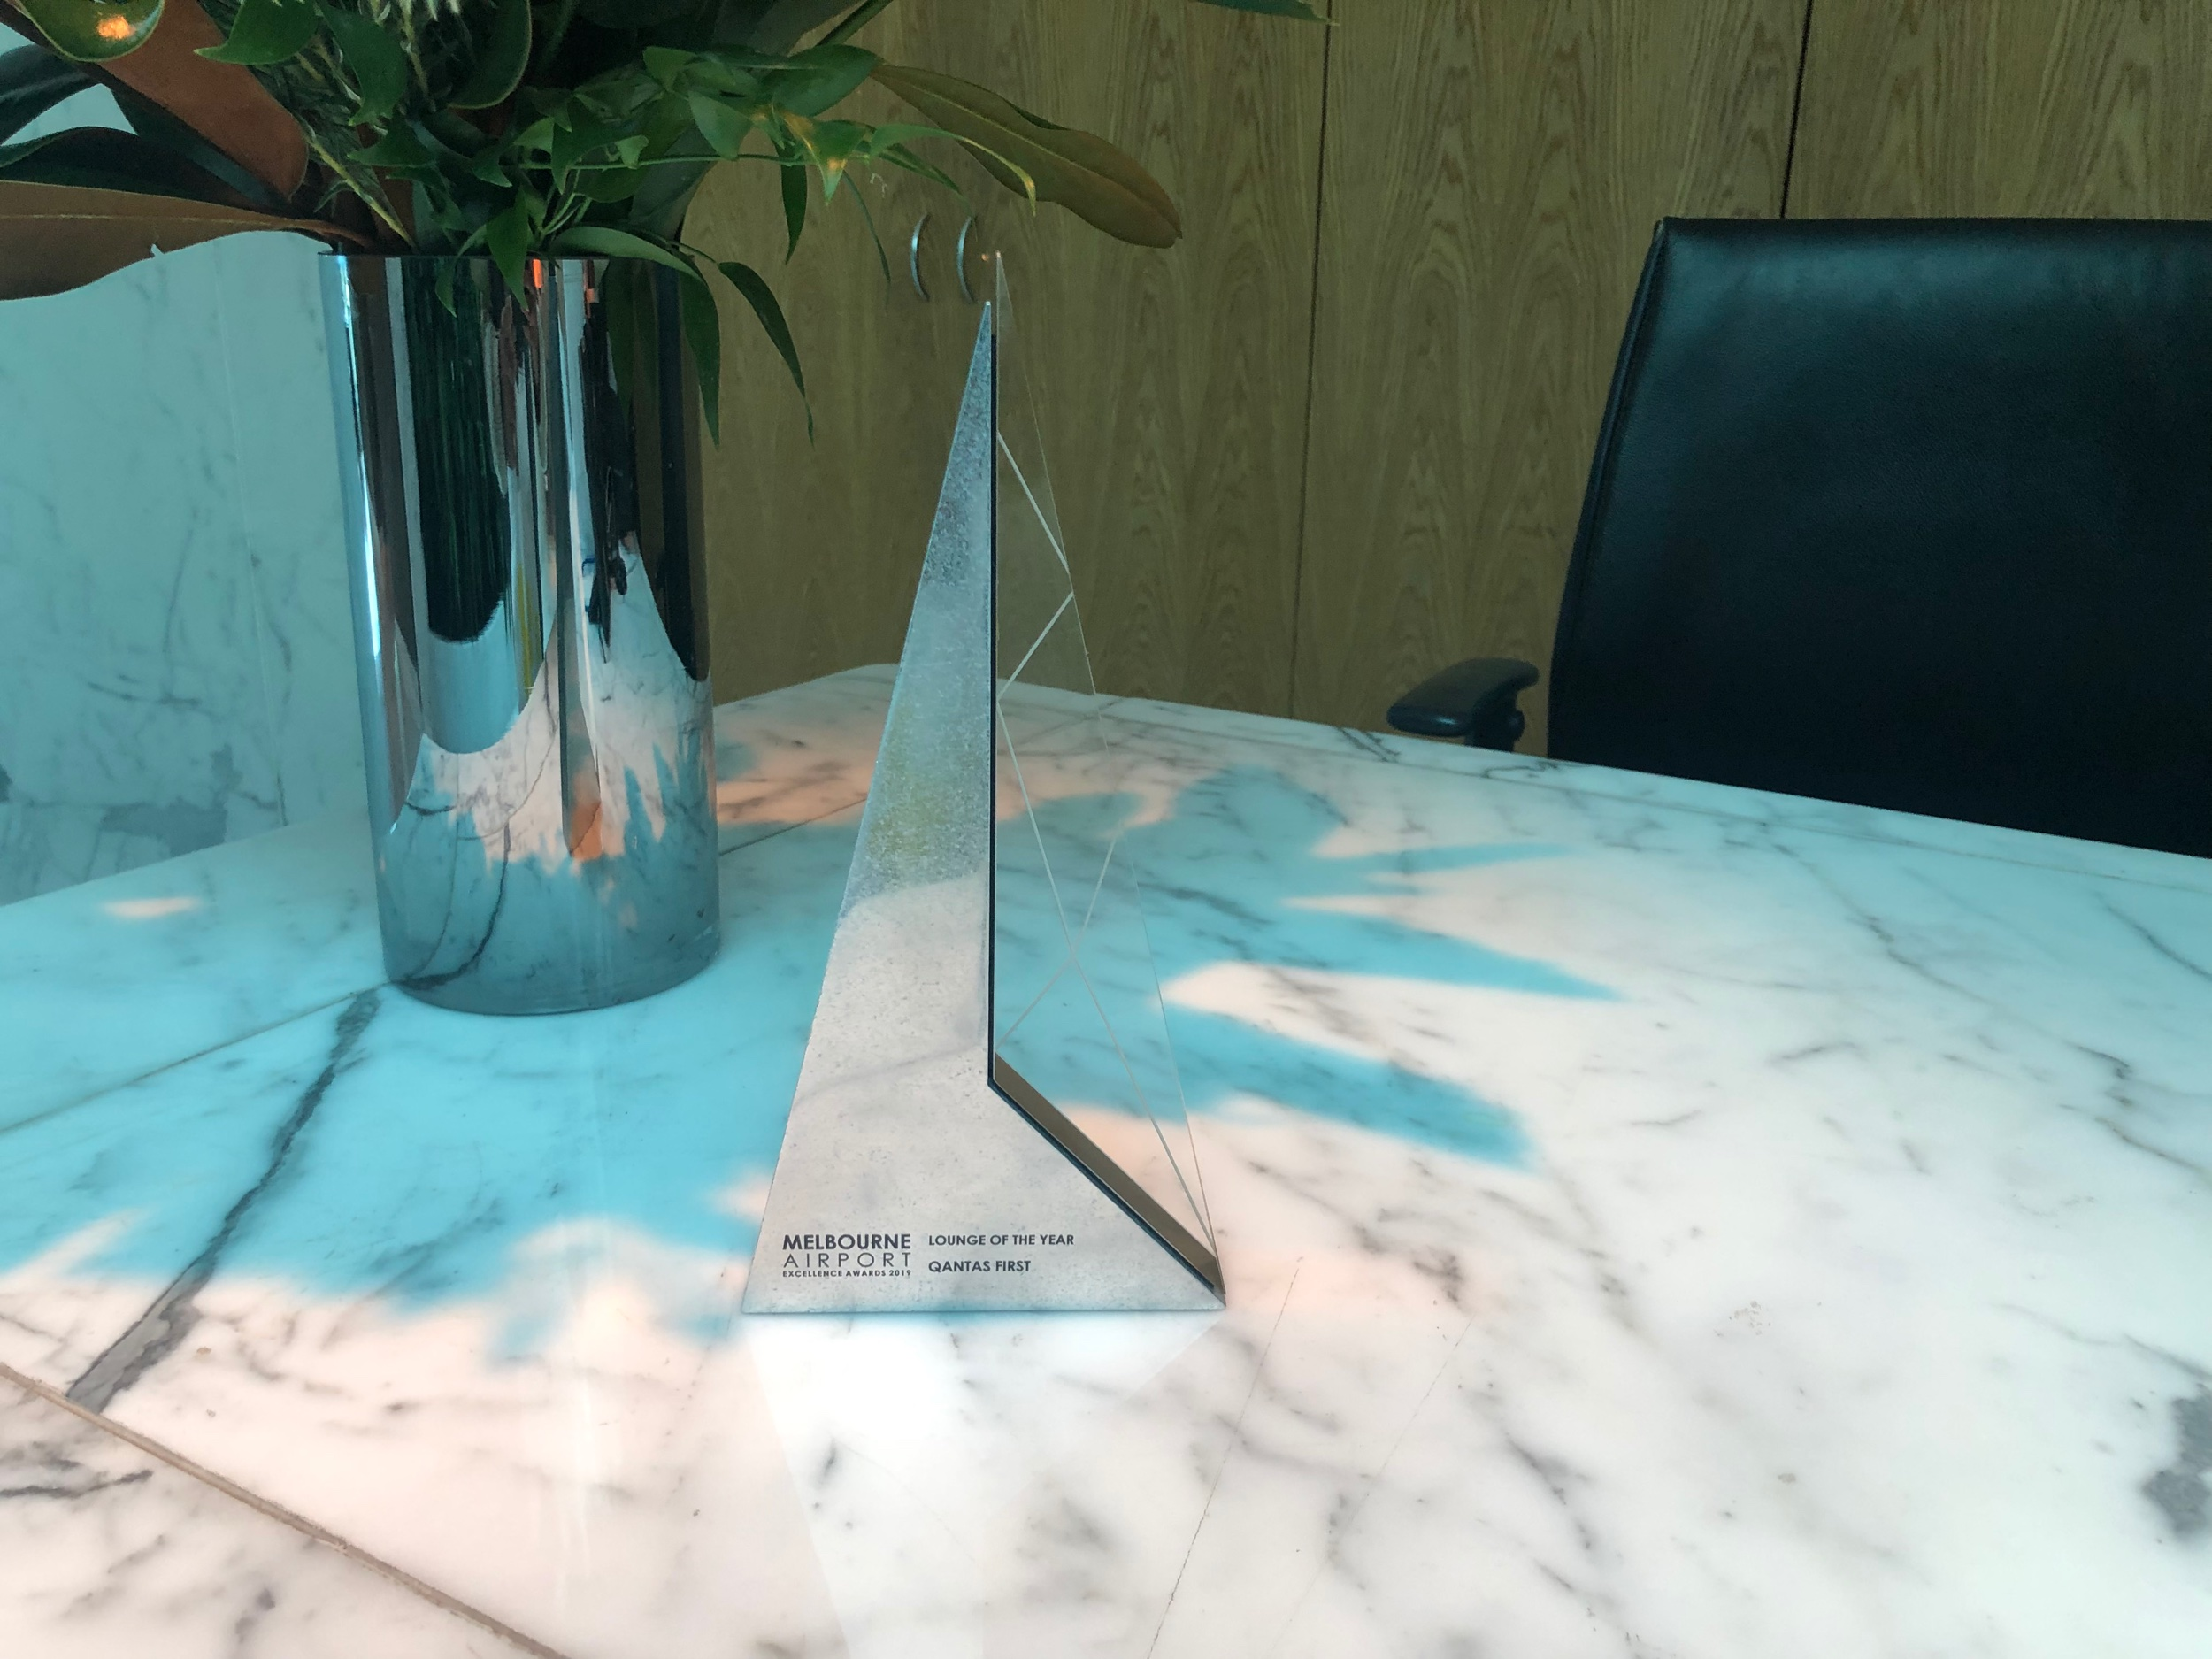 Qantas First Class Lounge Melbourne - Lounge of the Year Award